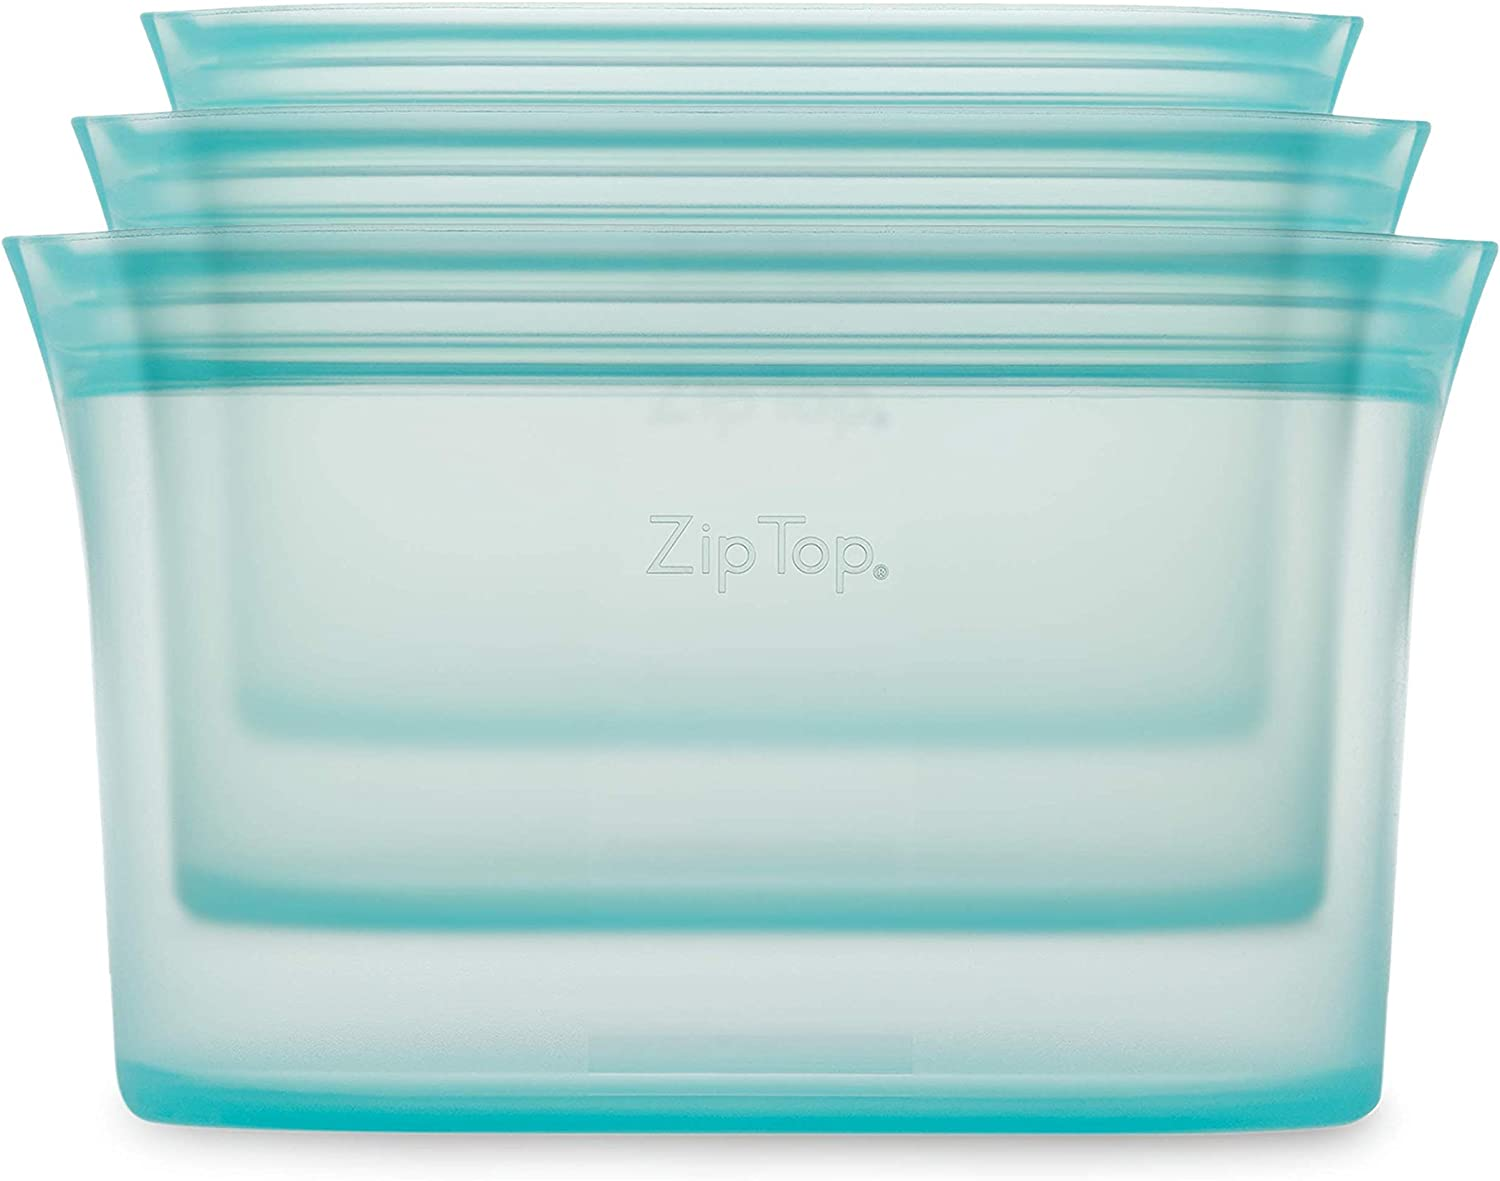 Zip Top Reusable 100% Silicone Food Storage Bags and Containers - 3 Dish Set - Teal